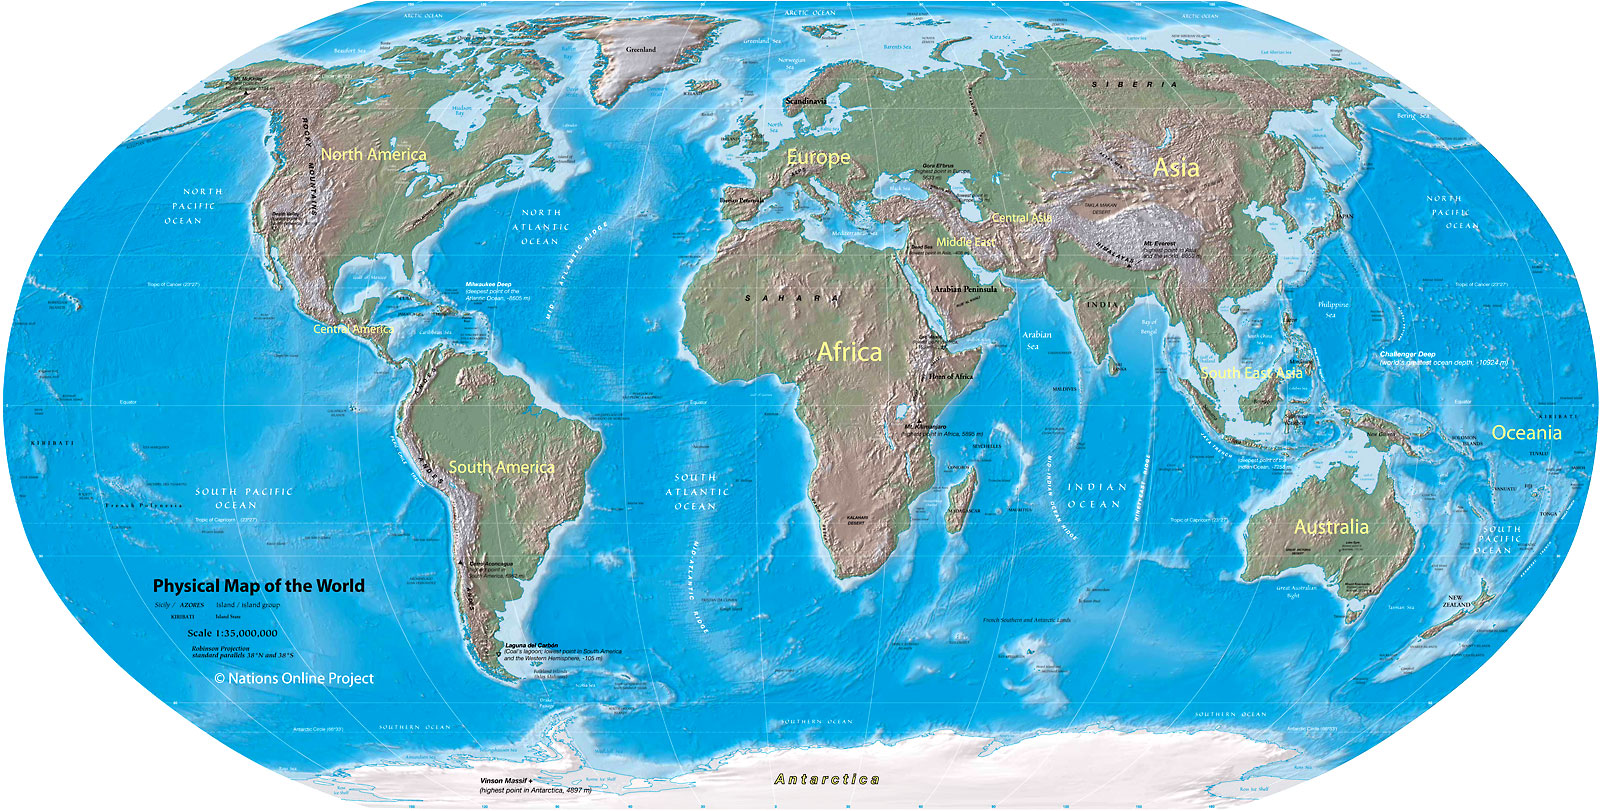 World map physical map of the world nations online project physical map of the world 855px gumiabroncs